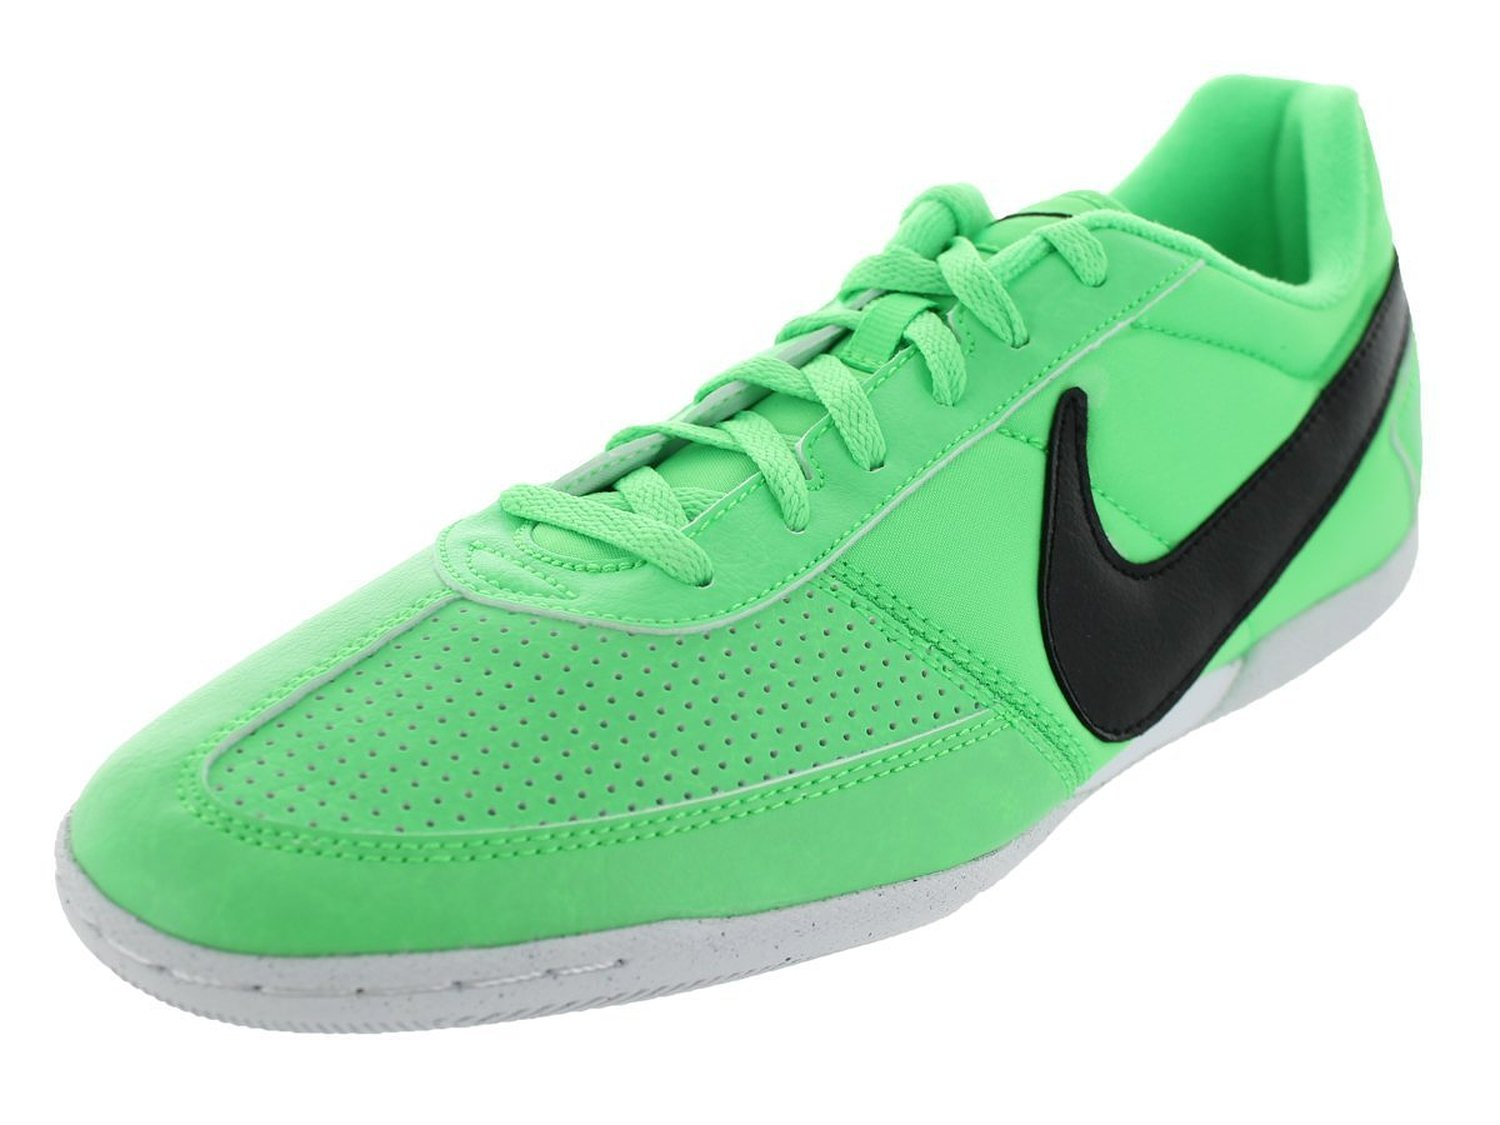 Nike Men's Davinho Poison Green/Black/White Indoor Soccer Shoe 12 Men US